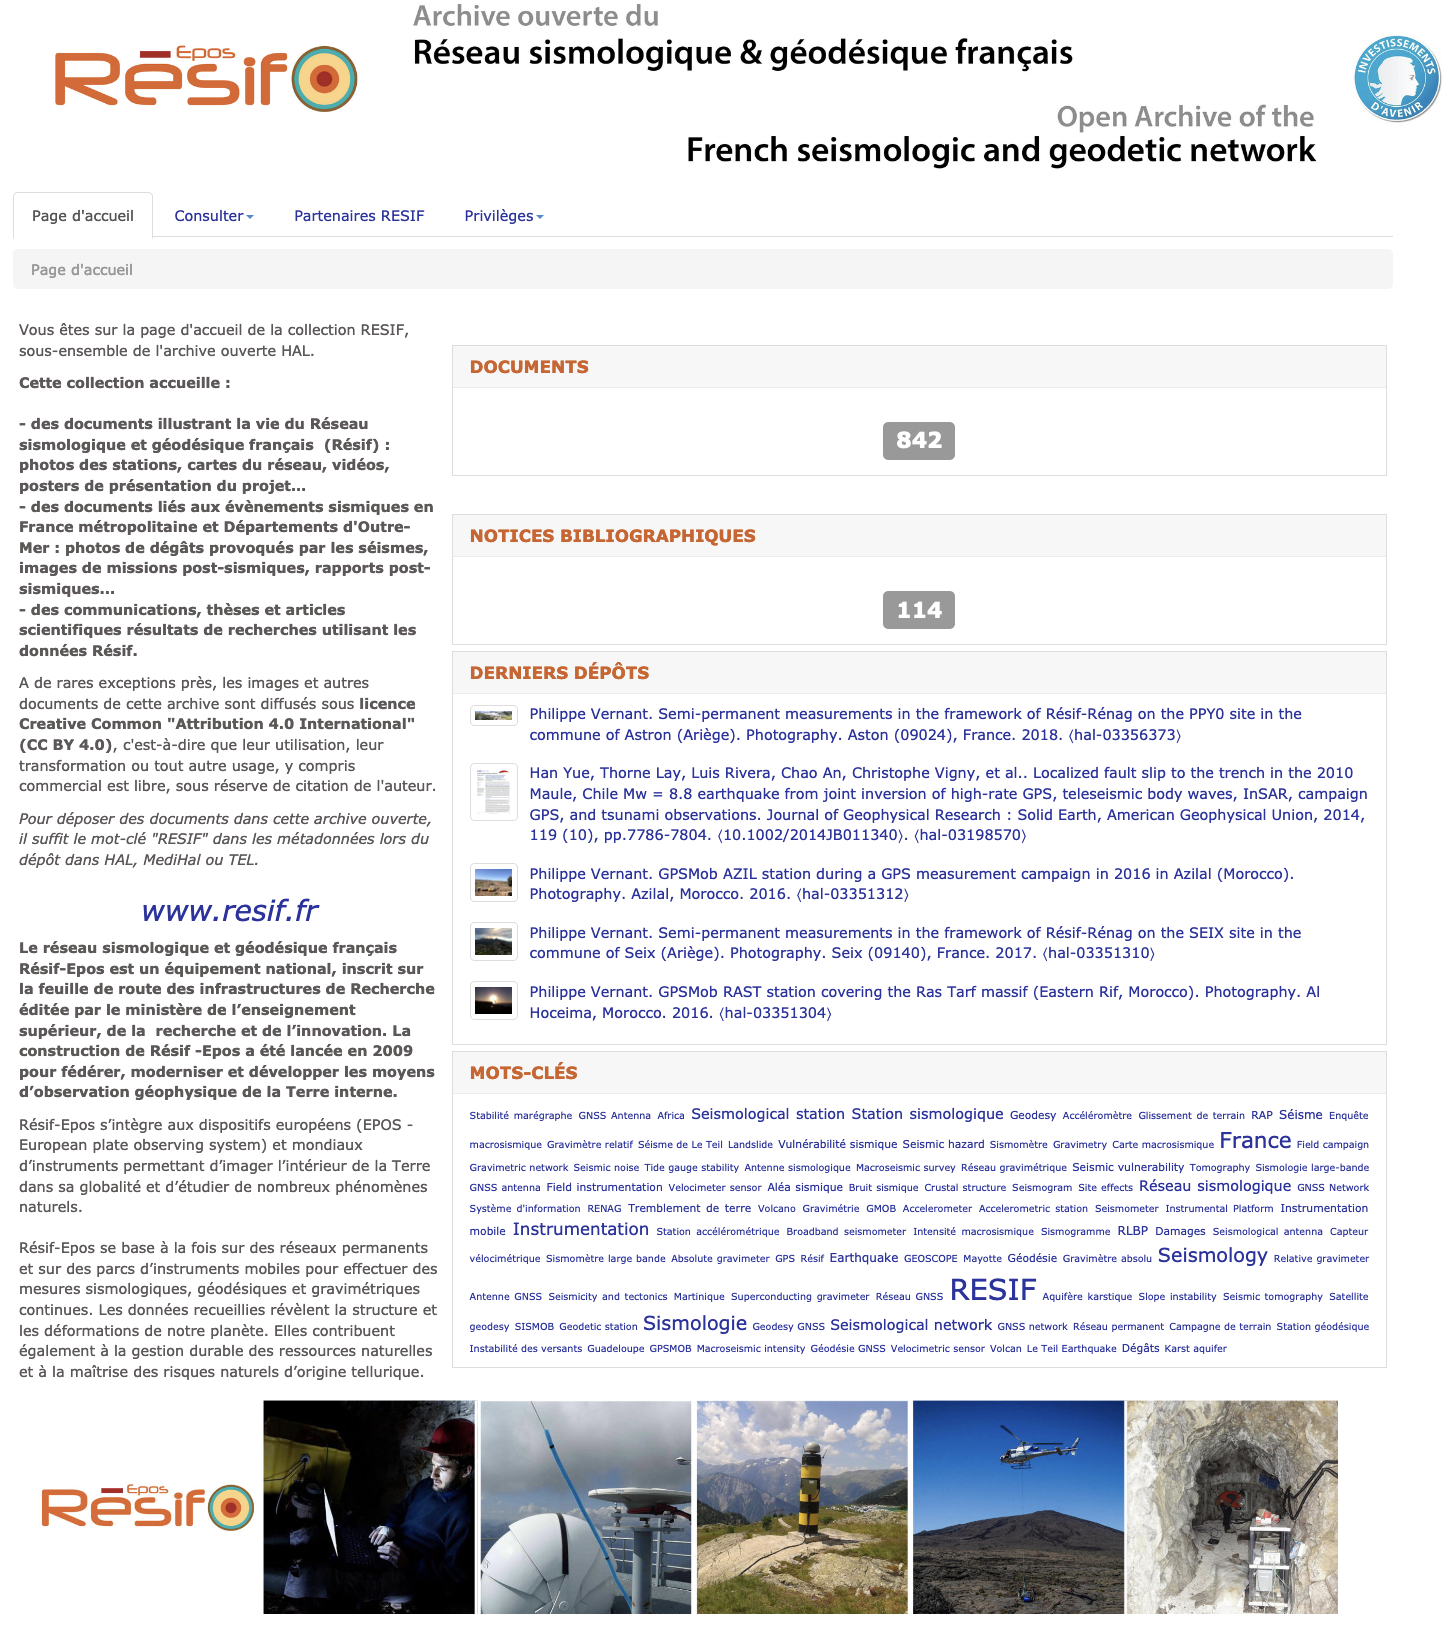 Page-accueil-Hal-Resif